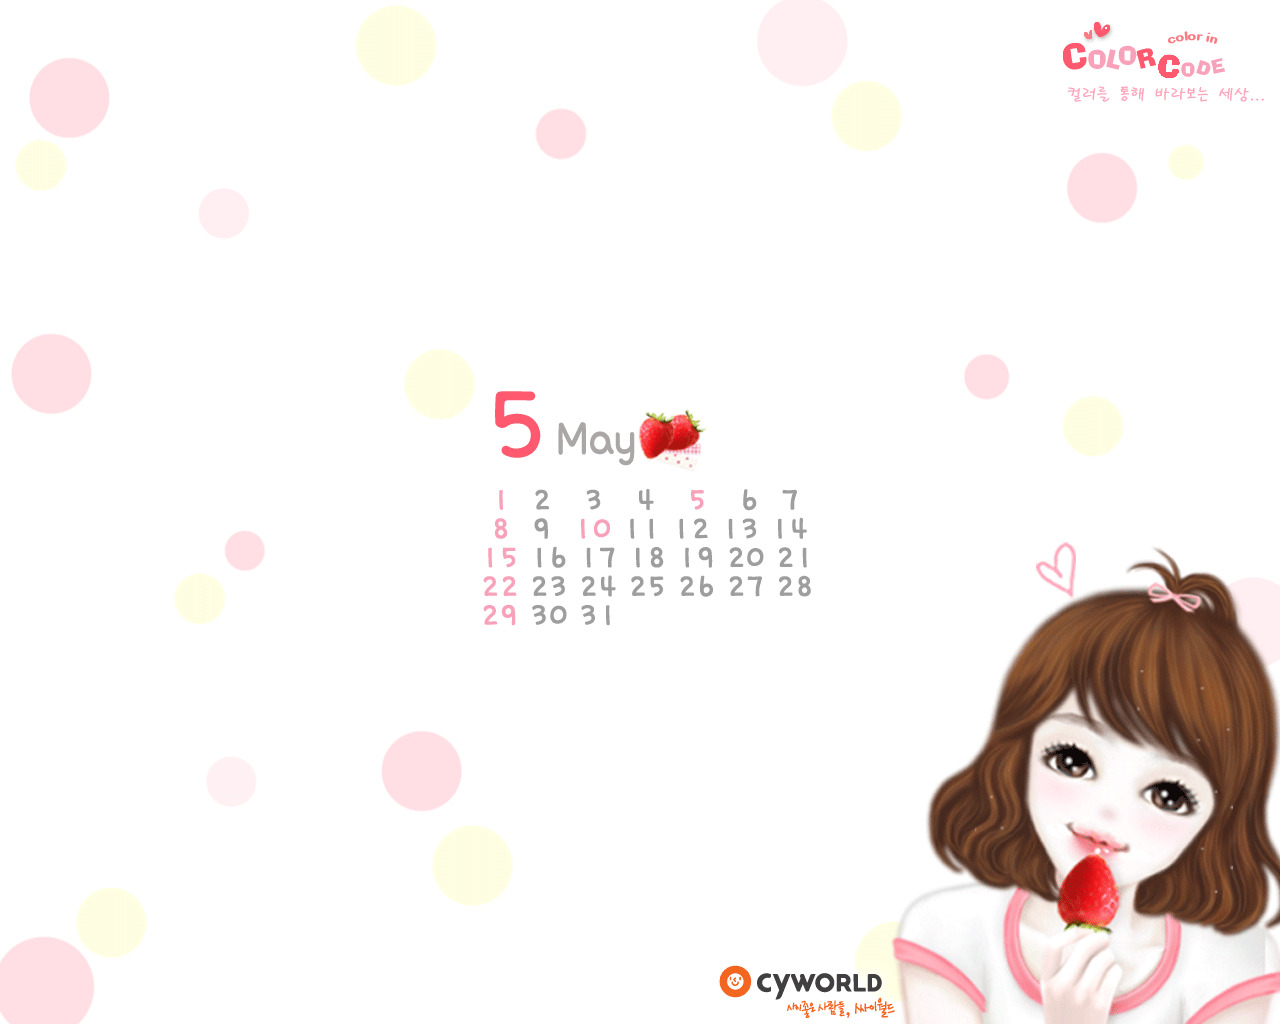 In January Calendar Wallpaper 29639